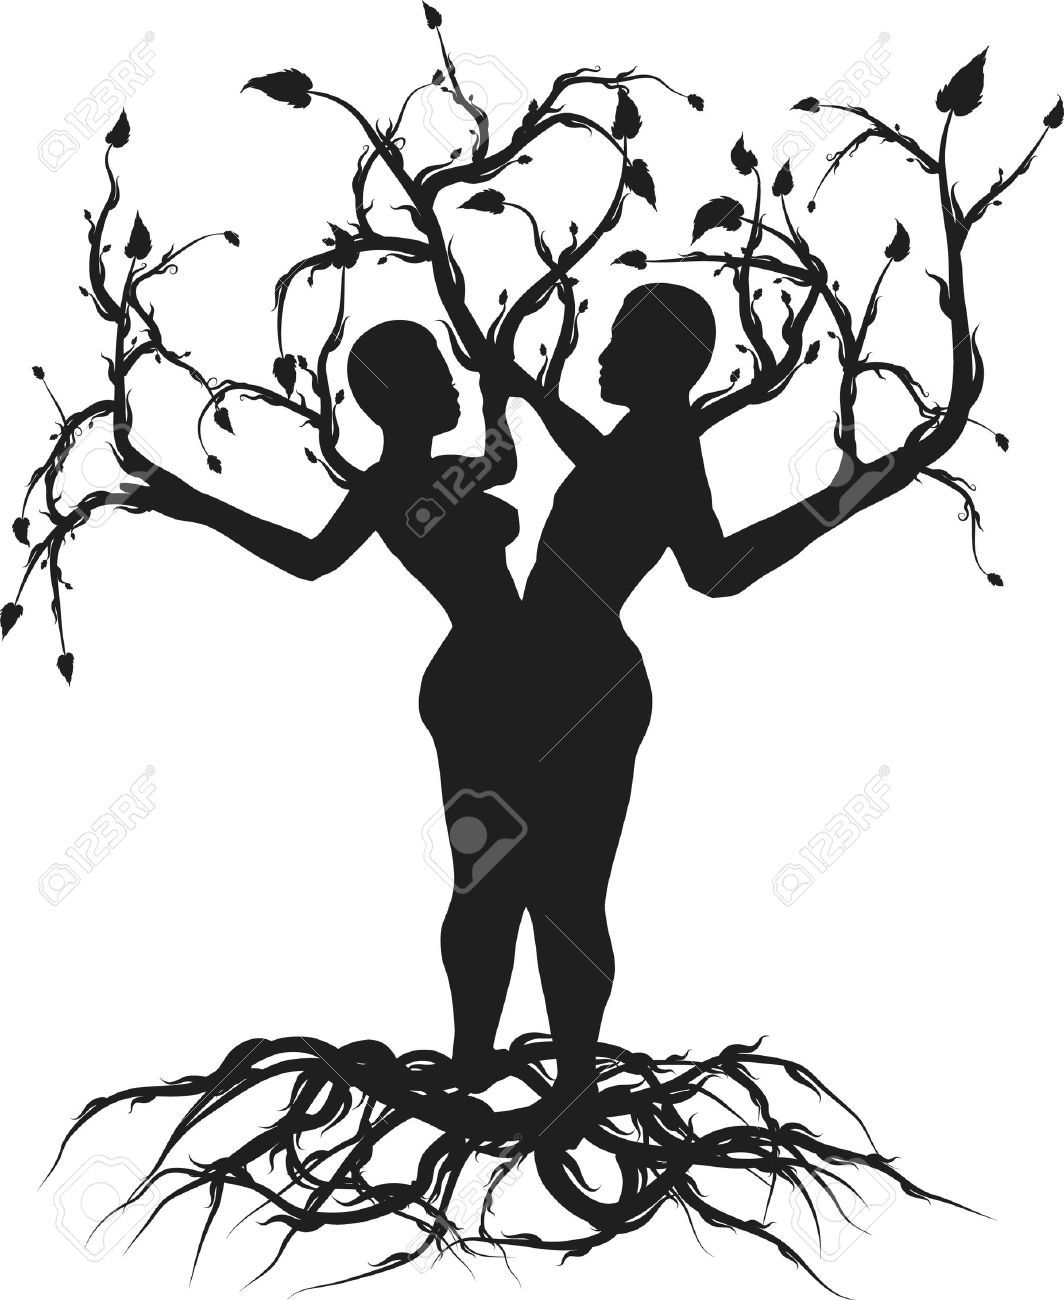 Tree Of Life Silhouette Clip Art At Getdrawings